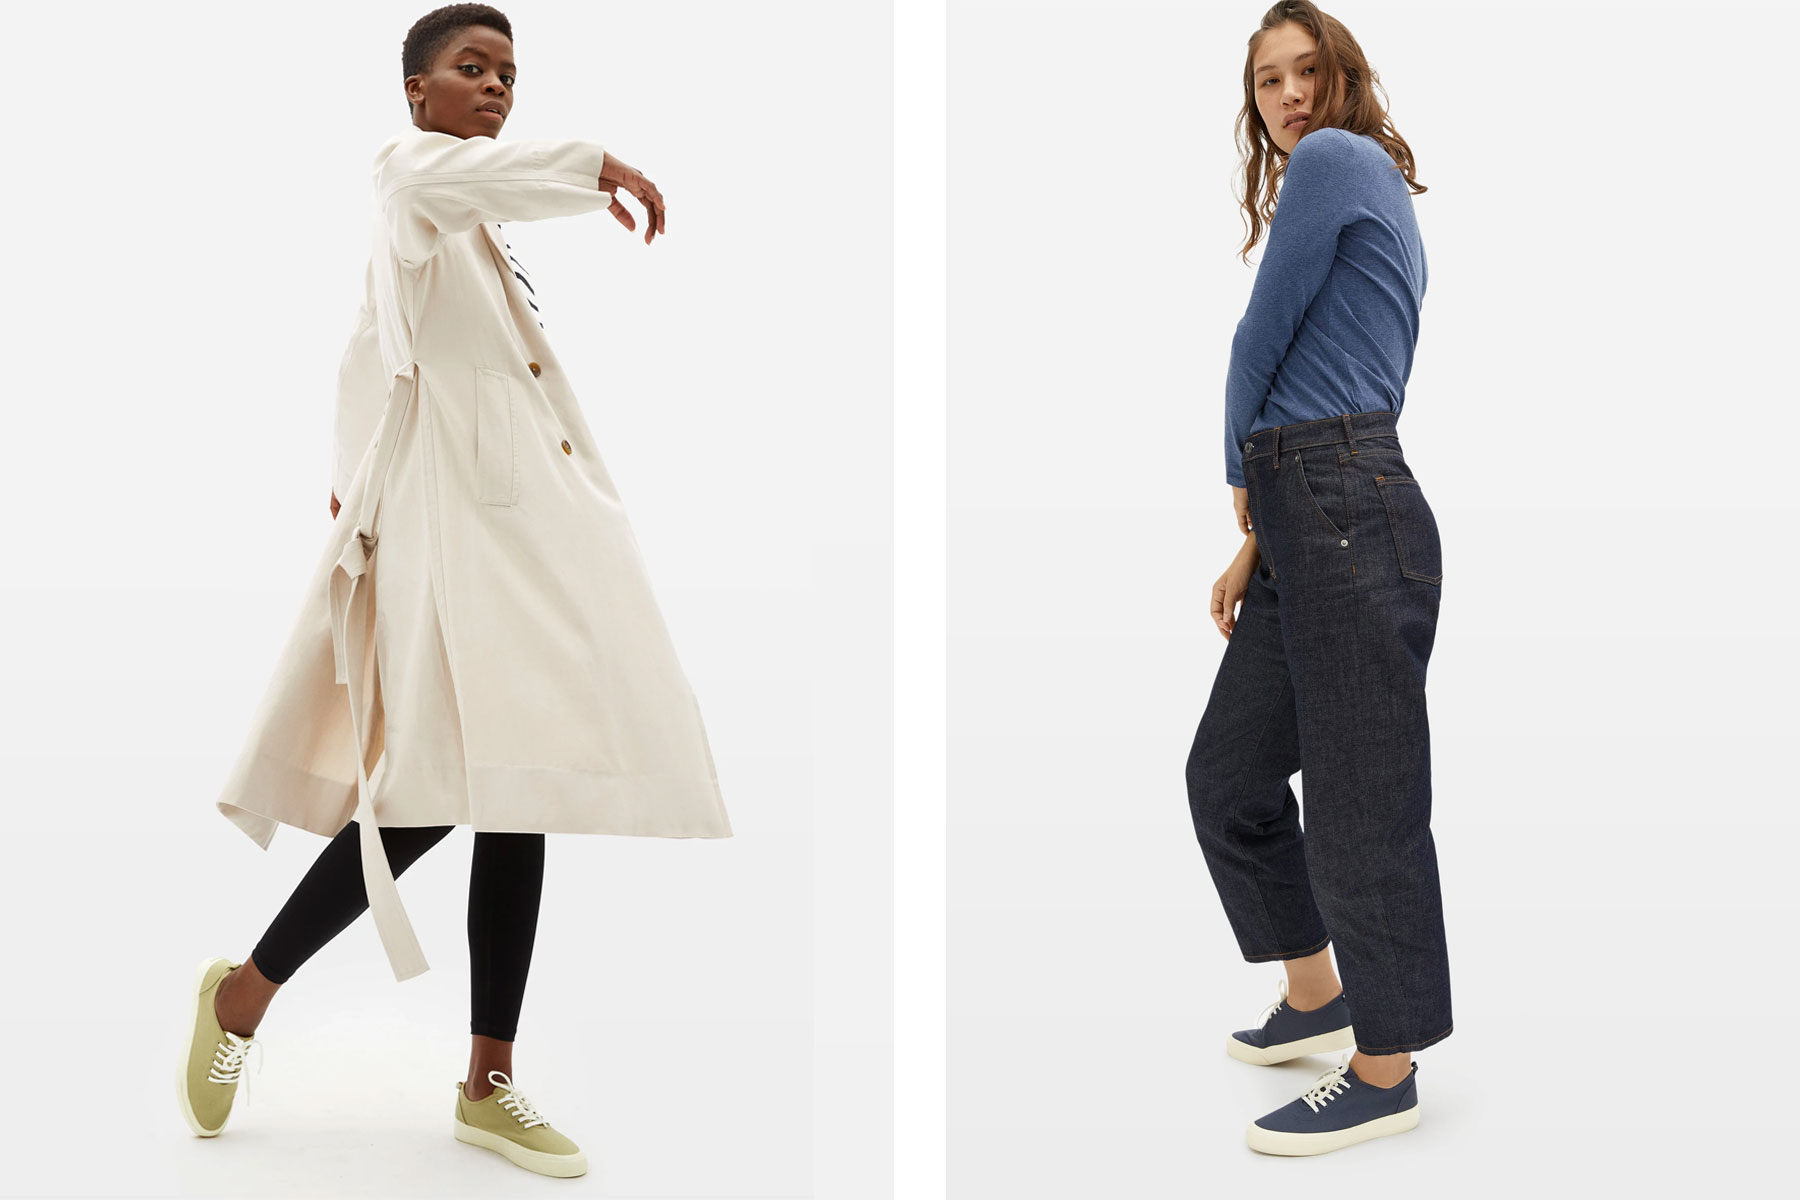 Women wearing Everlane sneakers